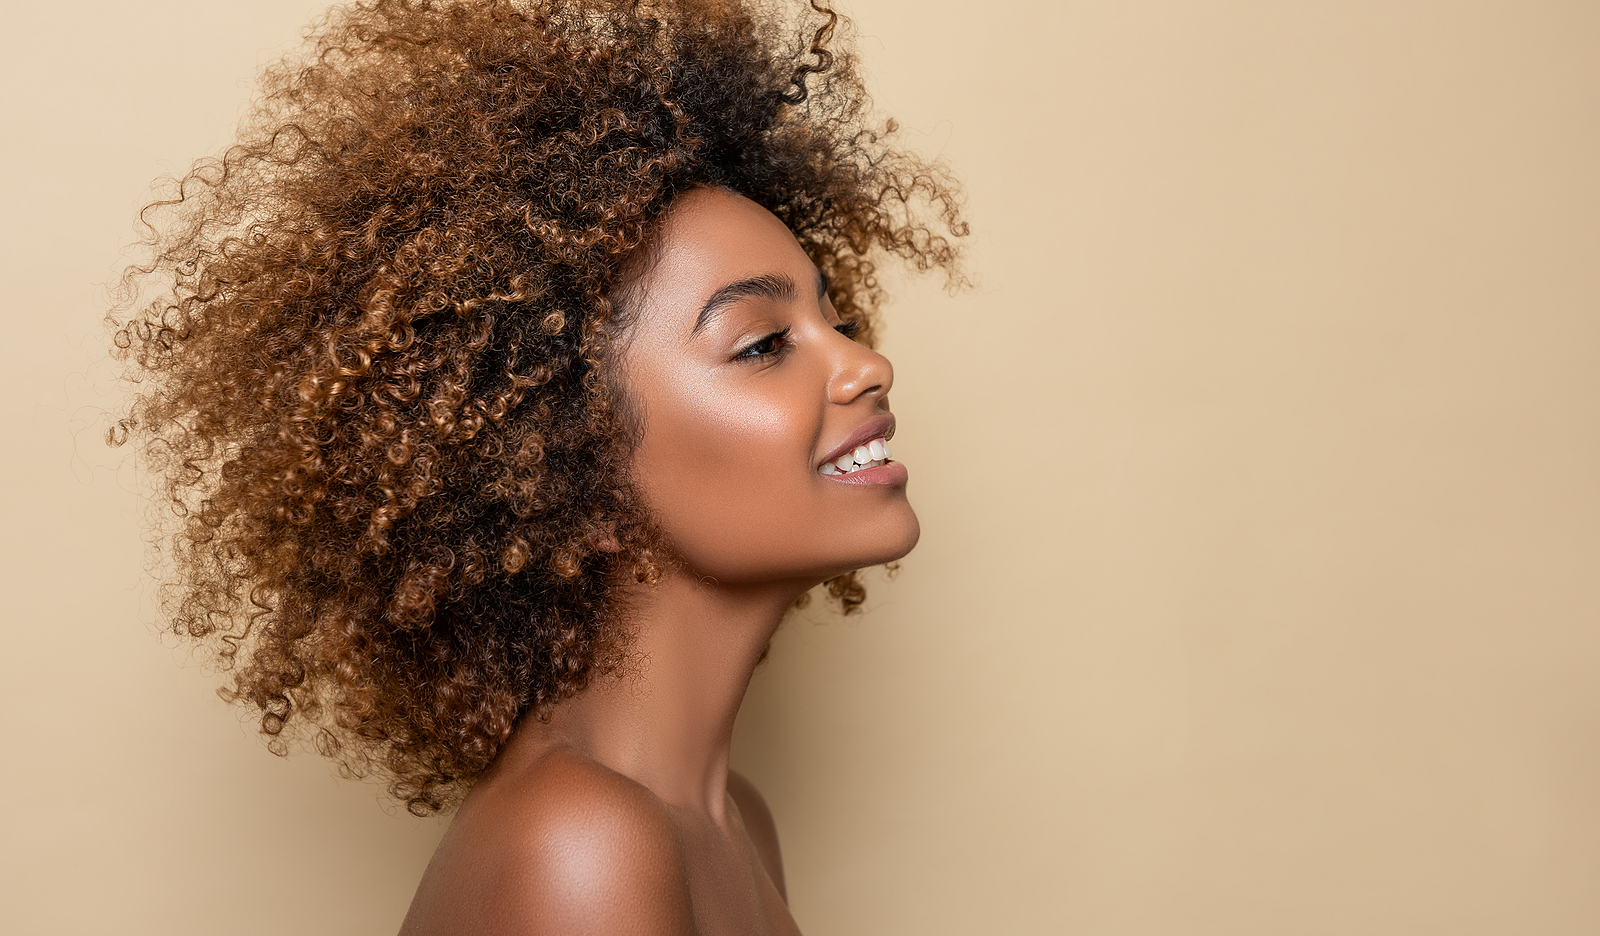 Black woman with beautiful curl fro smiling. Regardless of where you are, we can hep you with online therapy in Detroit, MI. Our black therapists know that asking for help is a process. Begin to find the needed support in online therapy in Michigan today. Additionally, we can serve men in therapy for men today!